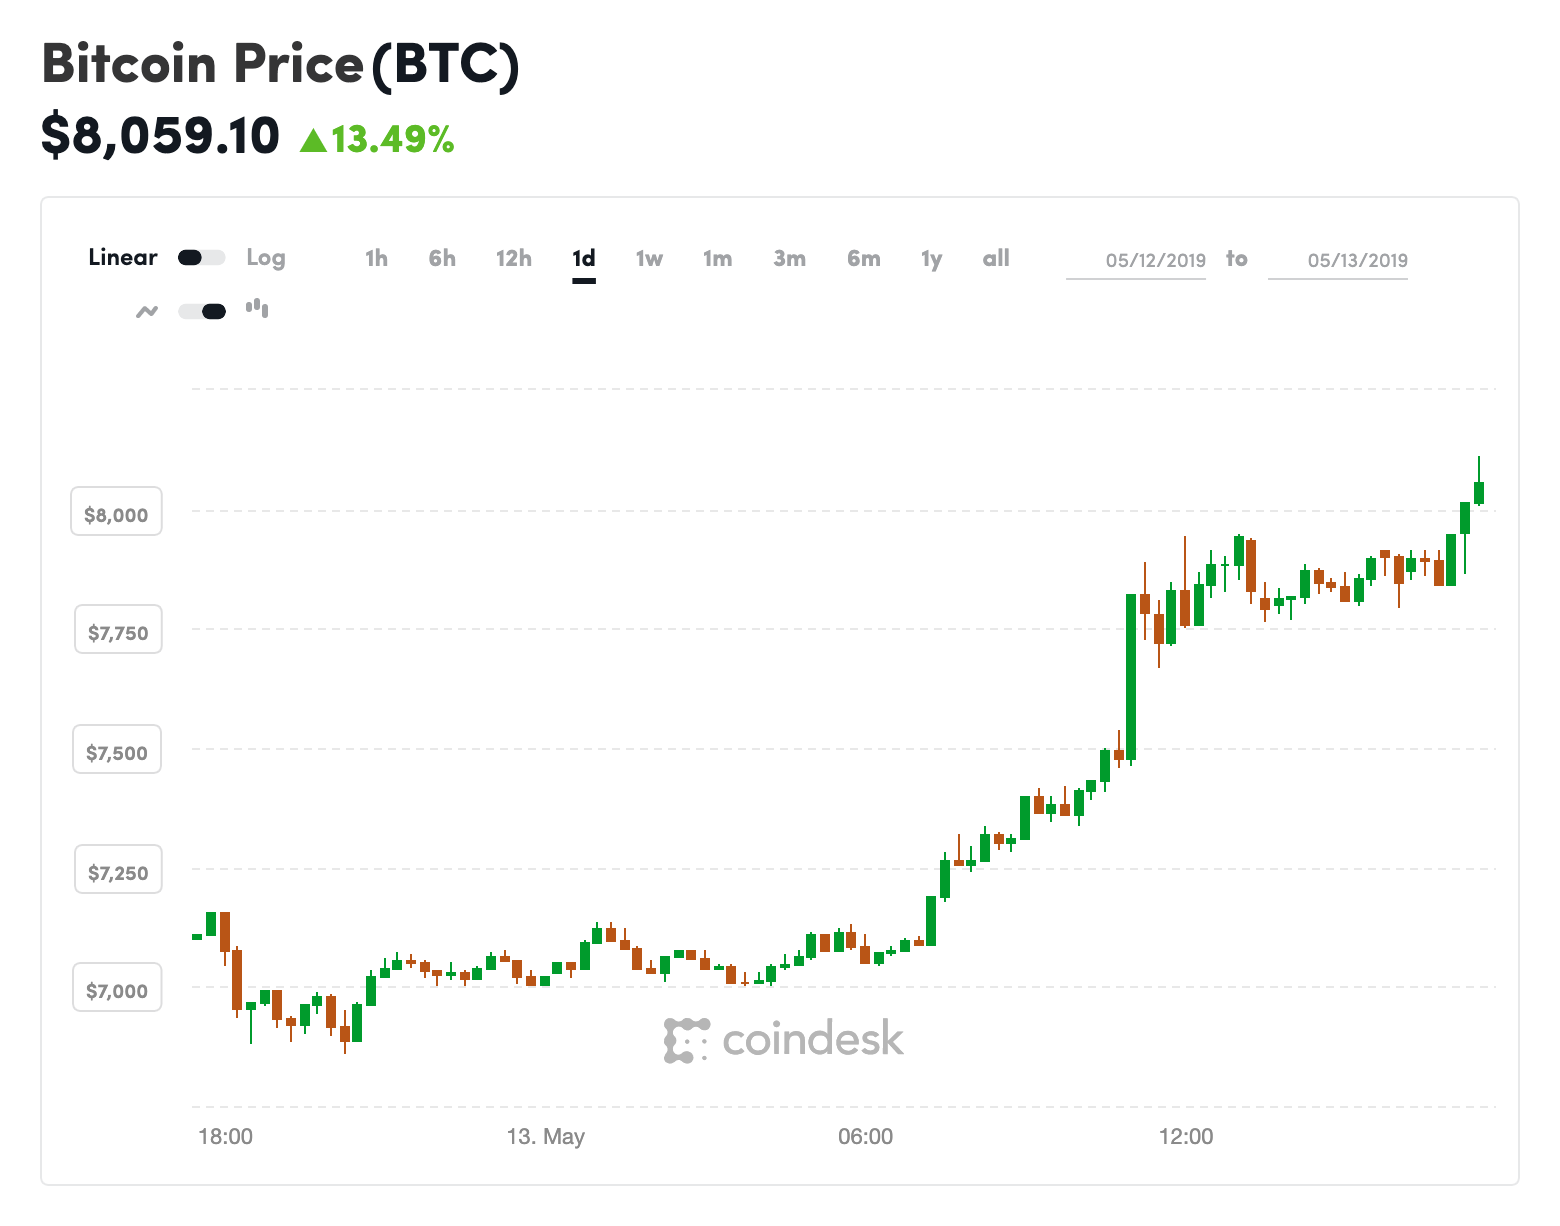 Up $1,200 on the Day, Bitcoin's Price Surges Above $8K ...